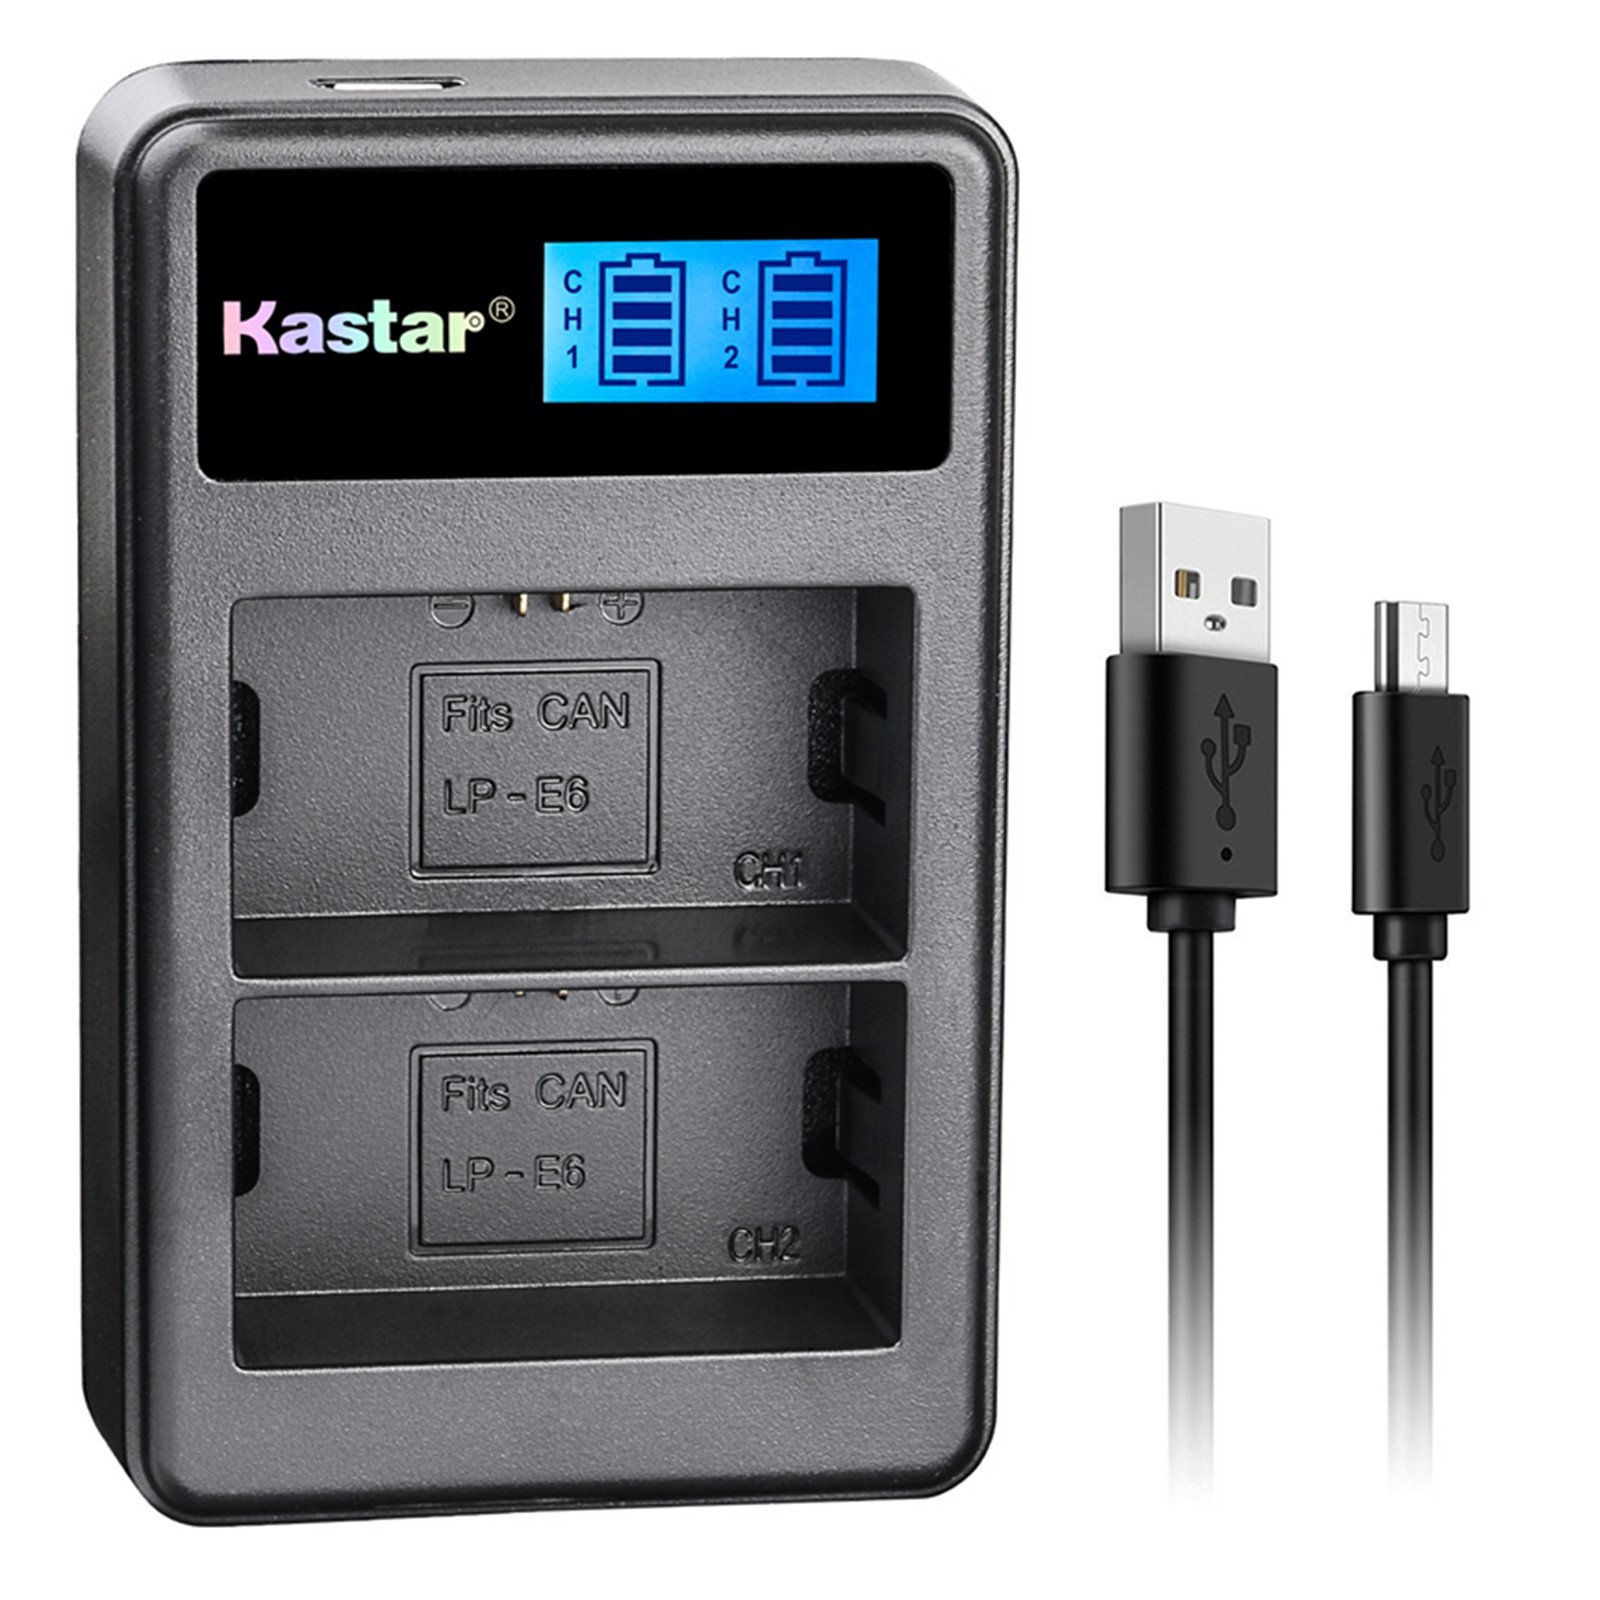 Kastar LCD Dual Charger for Canon LP-E6 LP-E6N, Canon EOS 60D 60Da EOS 70D XC10, EOS 5D Mark II 5D Mark III 5D Mark IV, EOS 5DS 5DS R, EOS 6D 7D Mark II and BG-E14 BG-E13 BG-E11 BG-E9 BG-E7 BG-E6 Grip